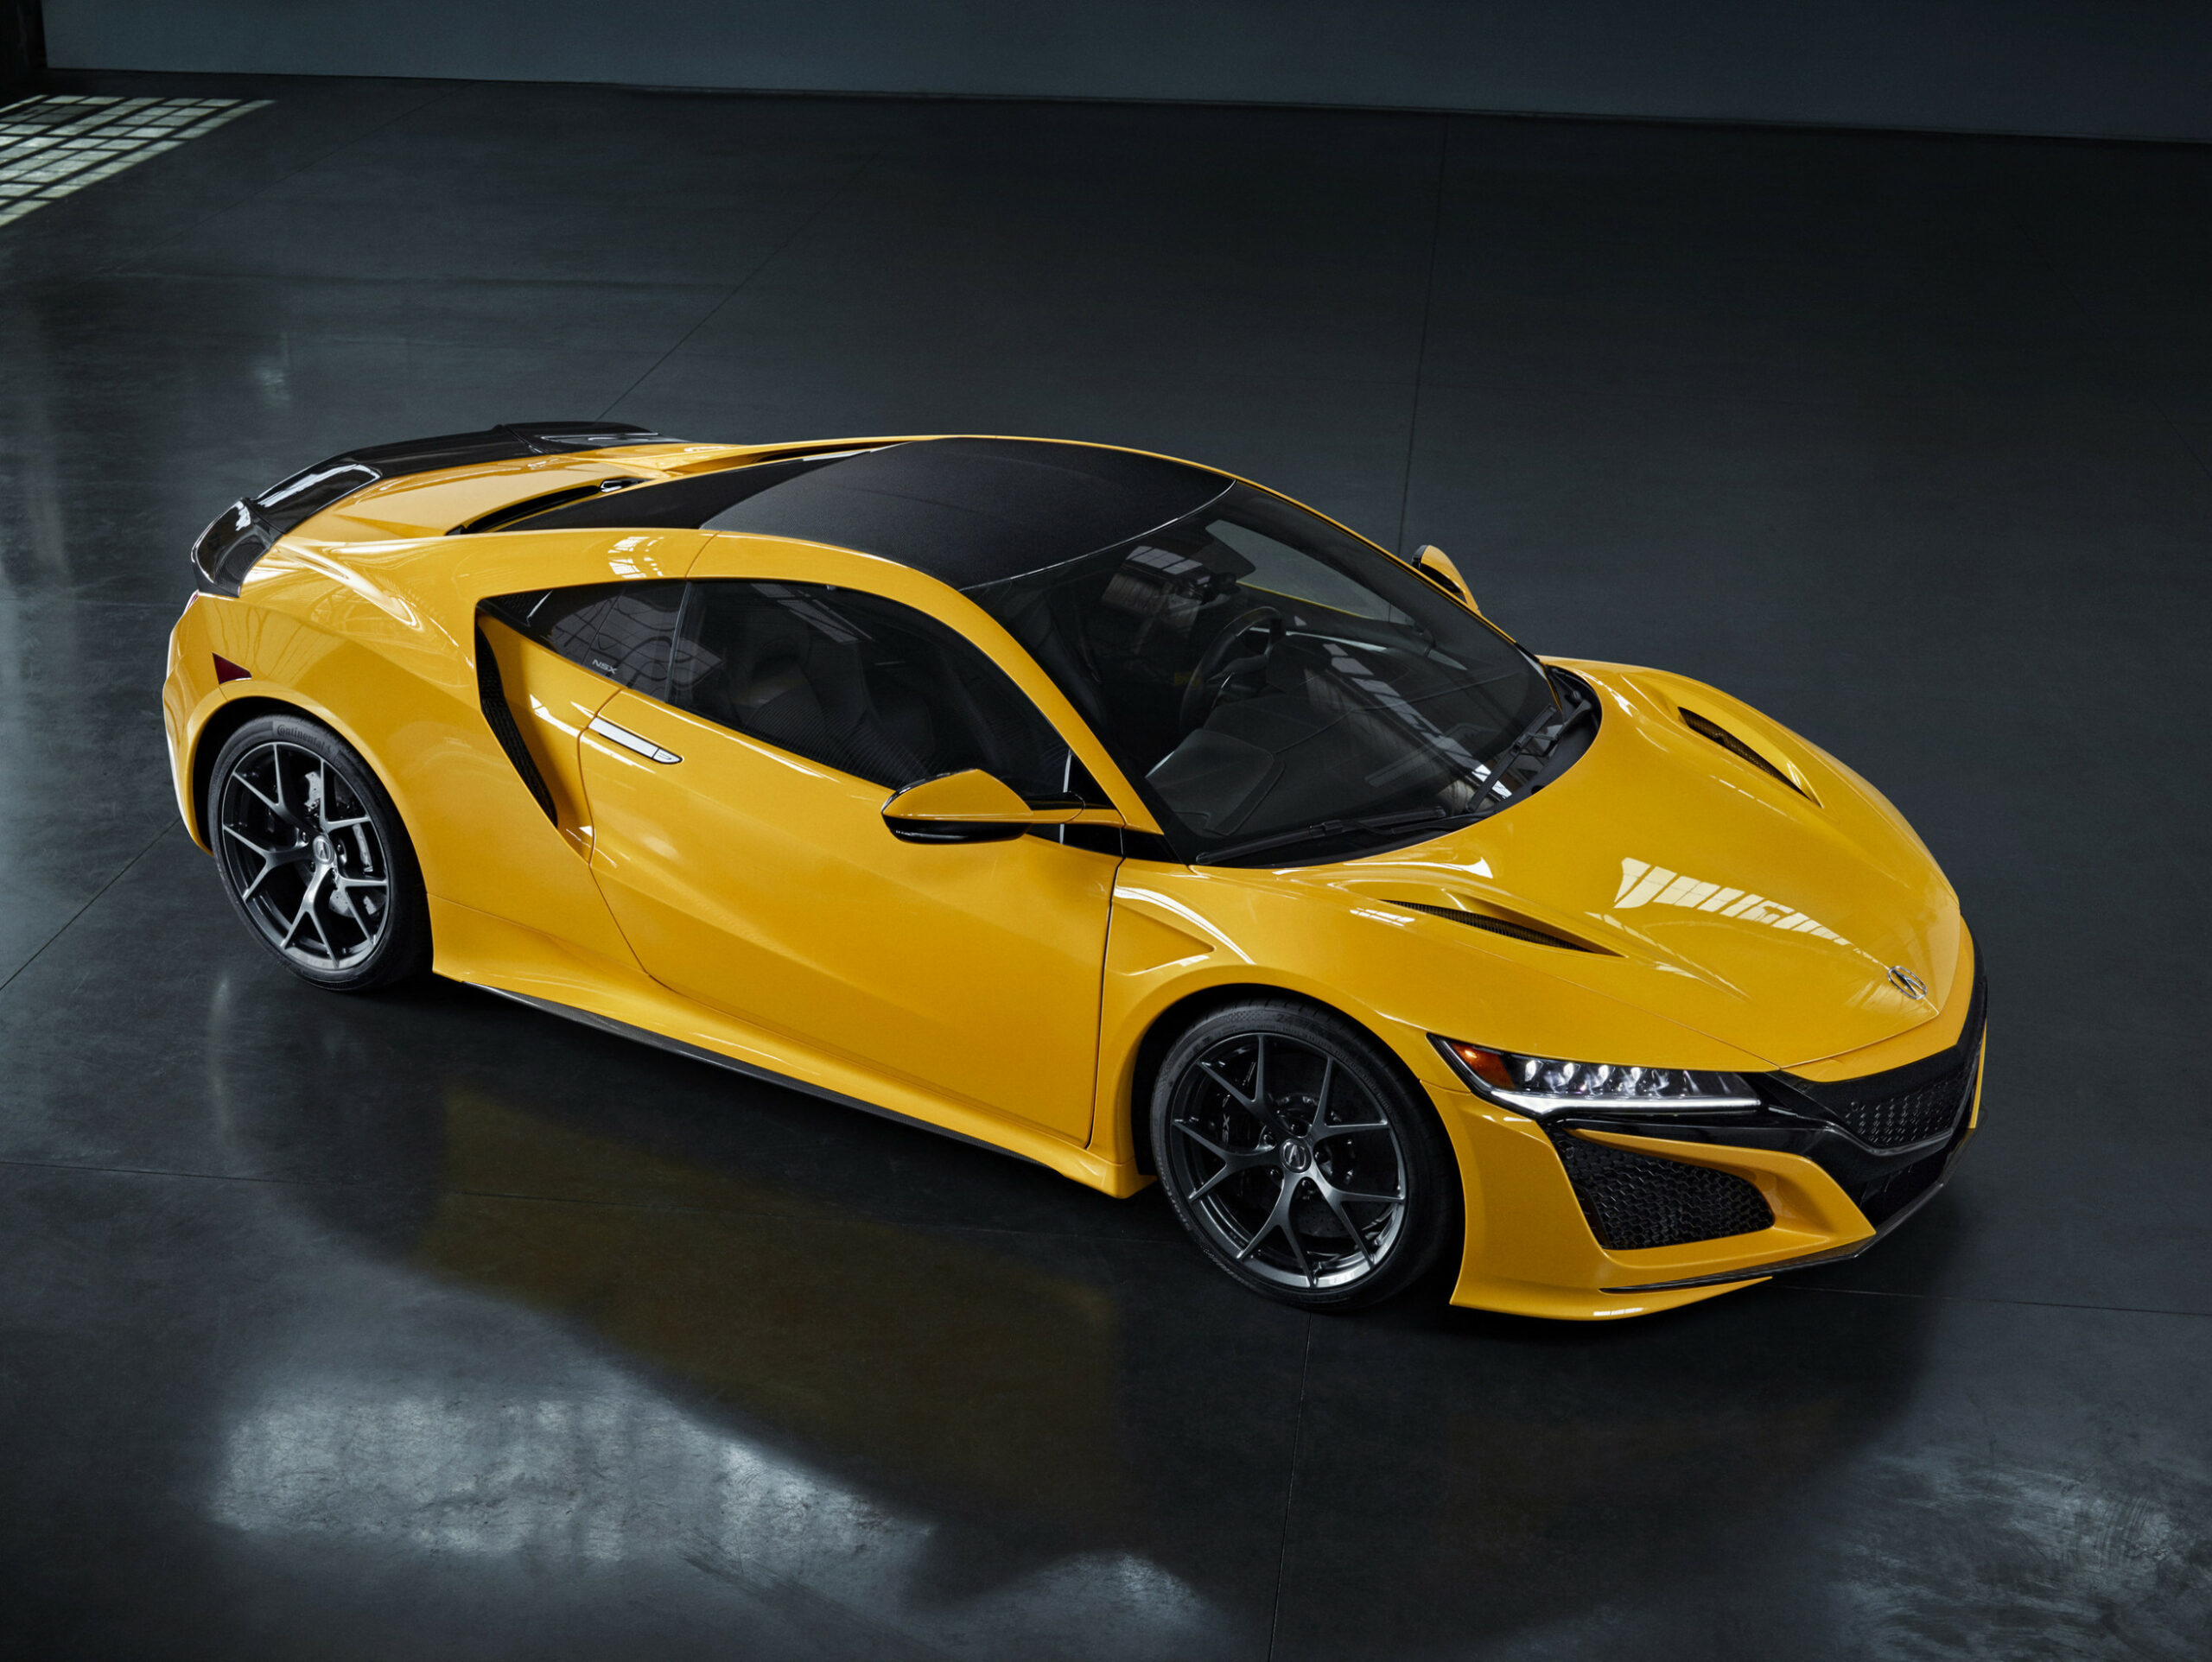 12 Acura NSX Debuts Heritage Color - Indy Yellow Pearl at ..